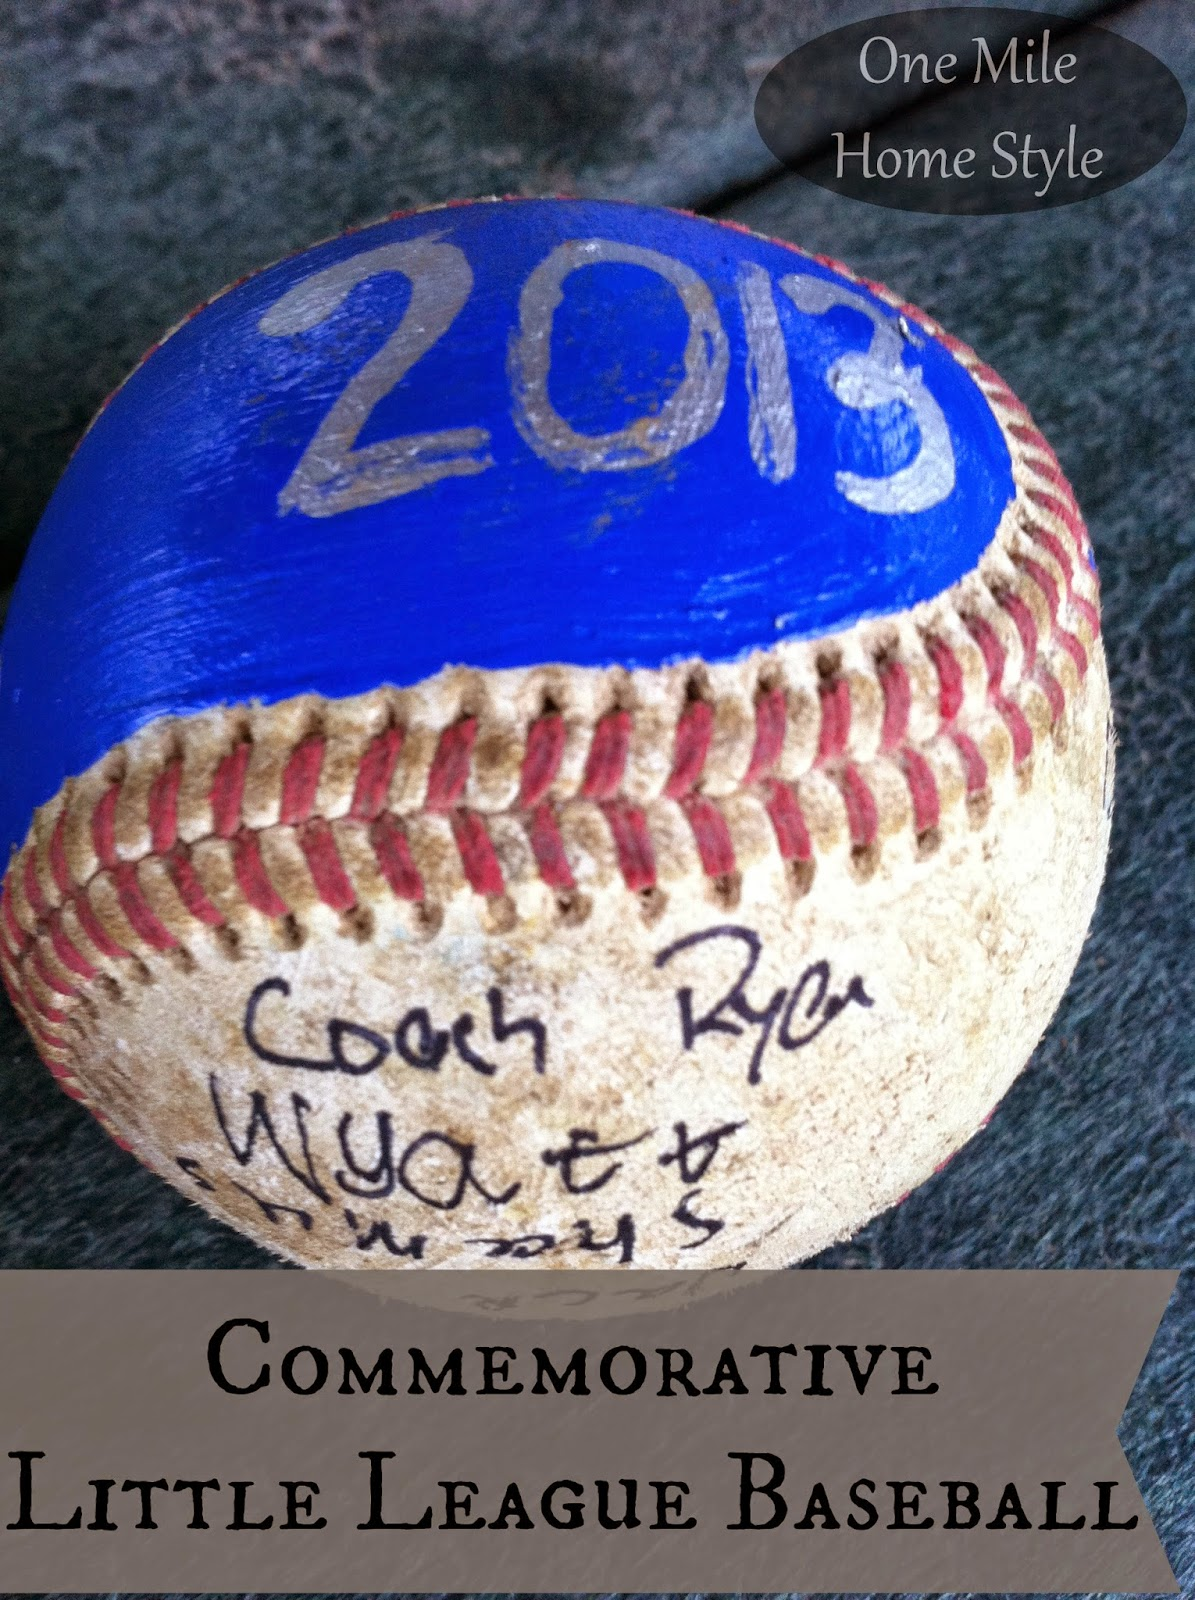 Commemorative Little League Baseball - End of Season Gift | One Mile Home Style